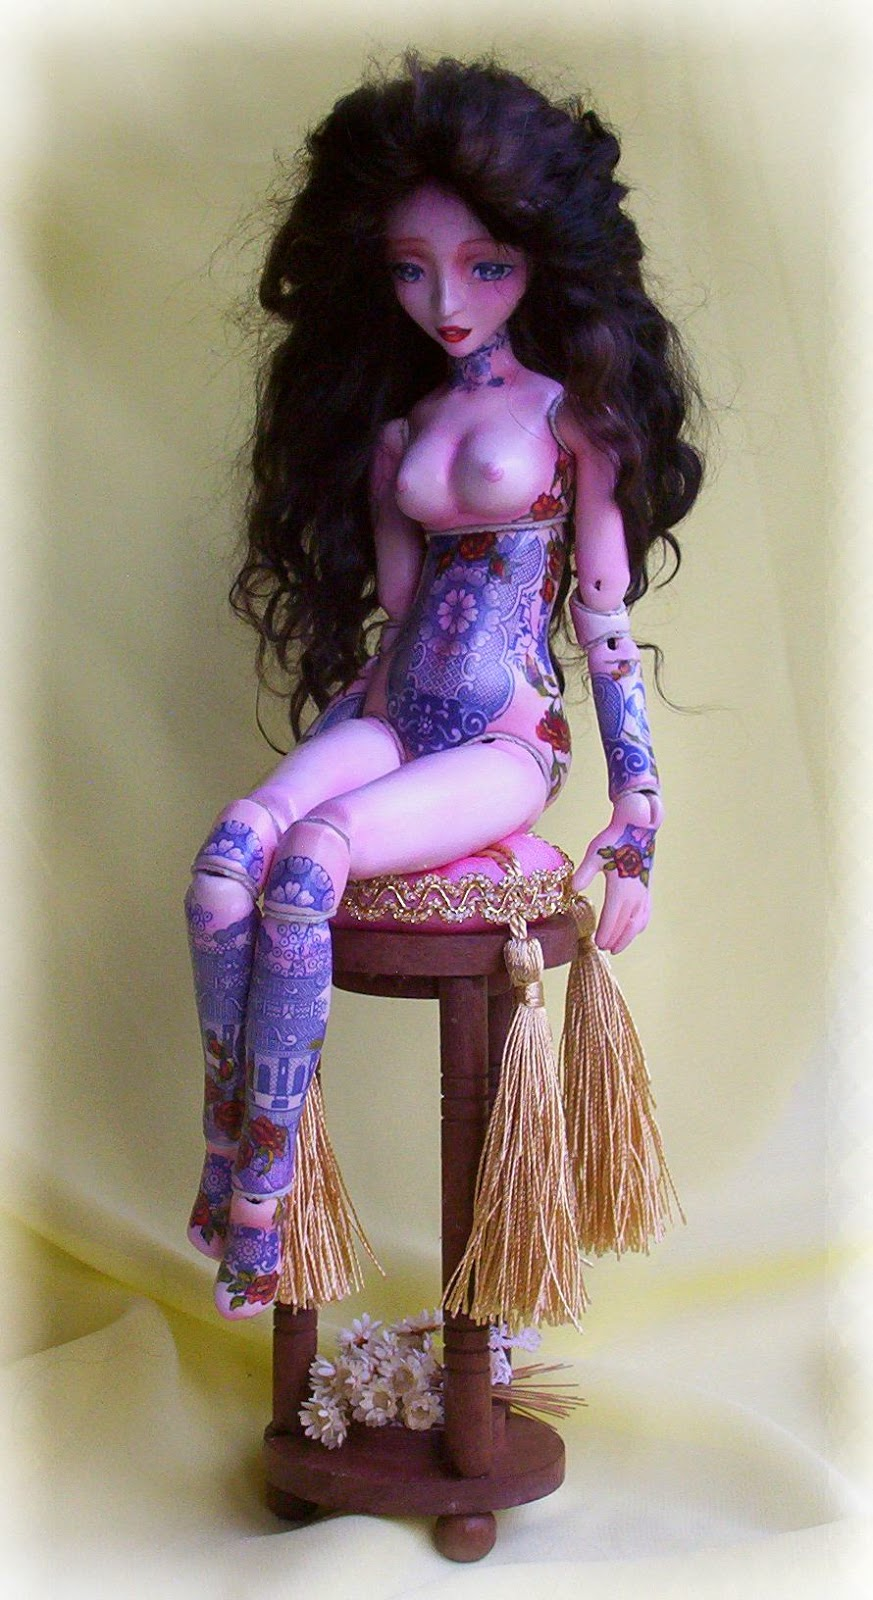 porcelain ball jointed doll art